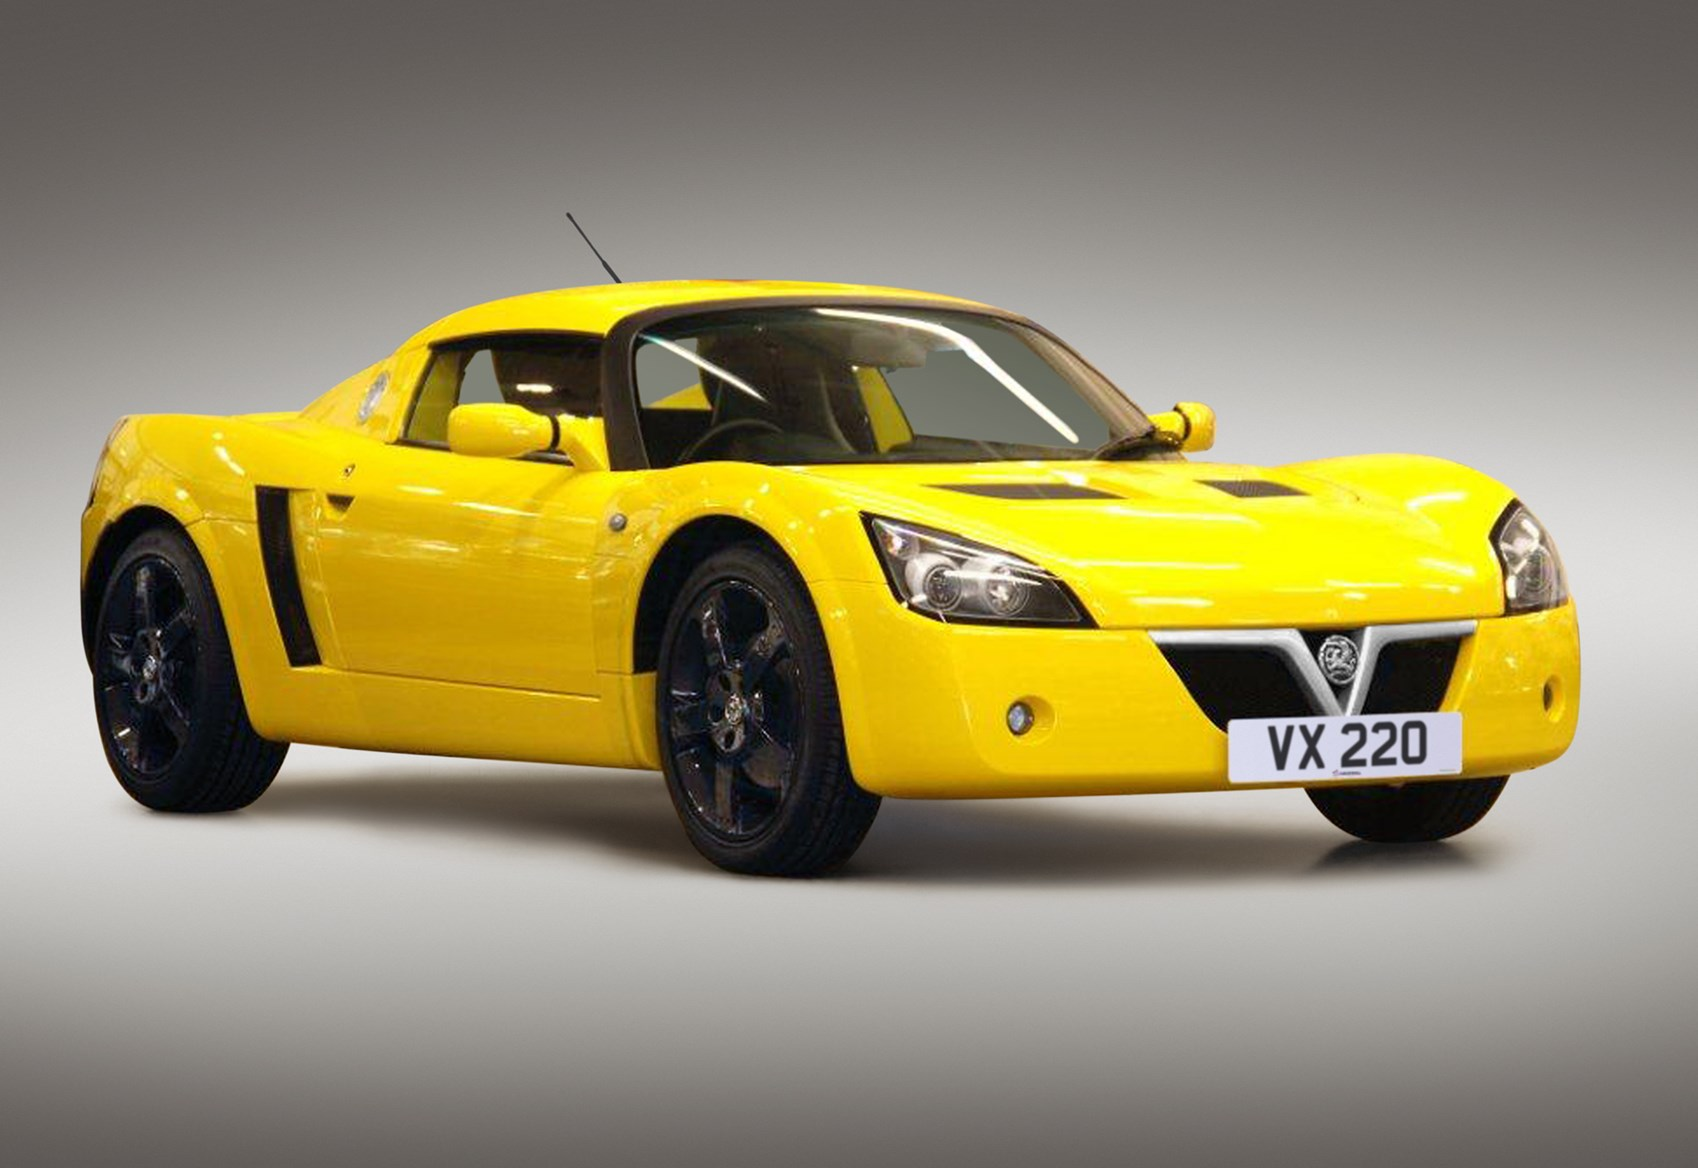 Vauxhall Vx220 Roadster Review 2000 2005 Parkers